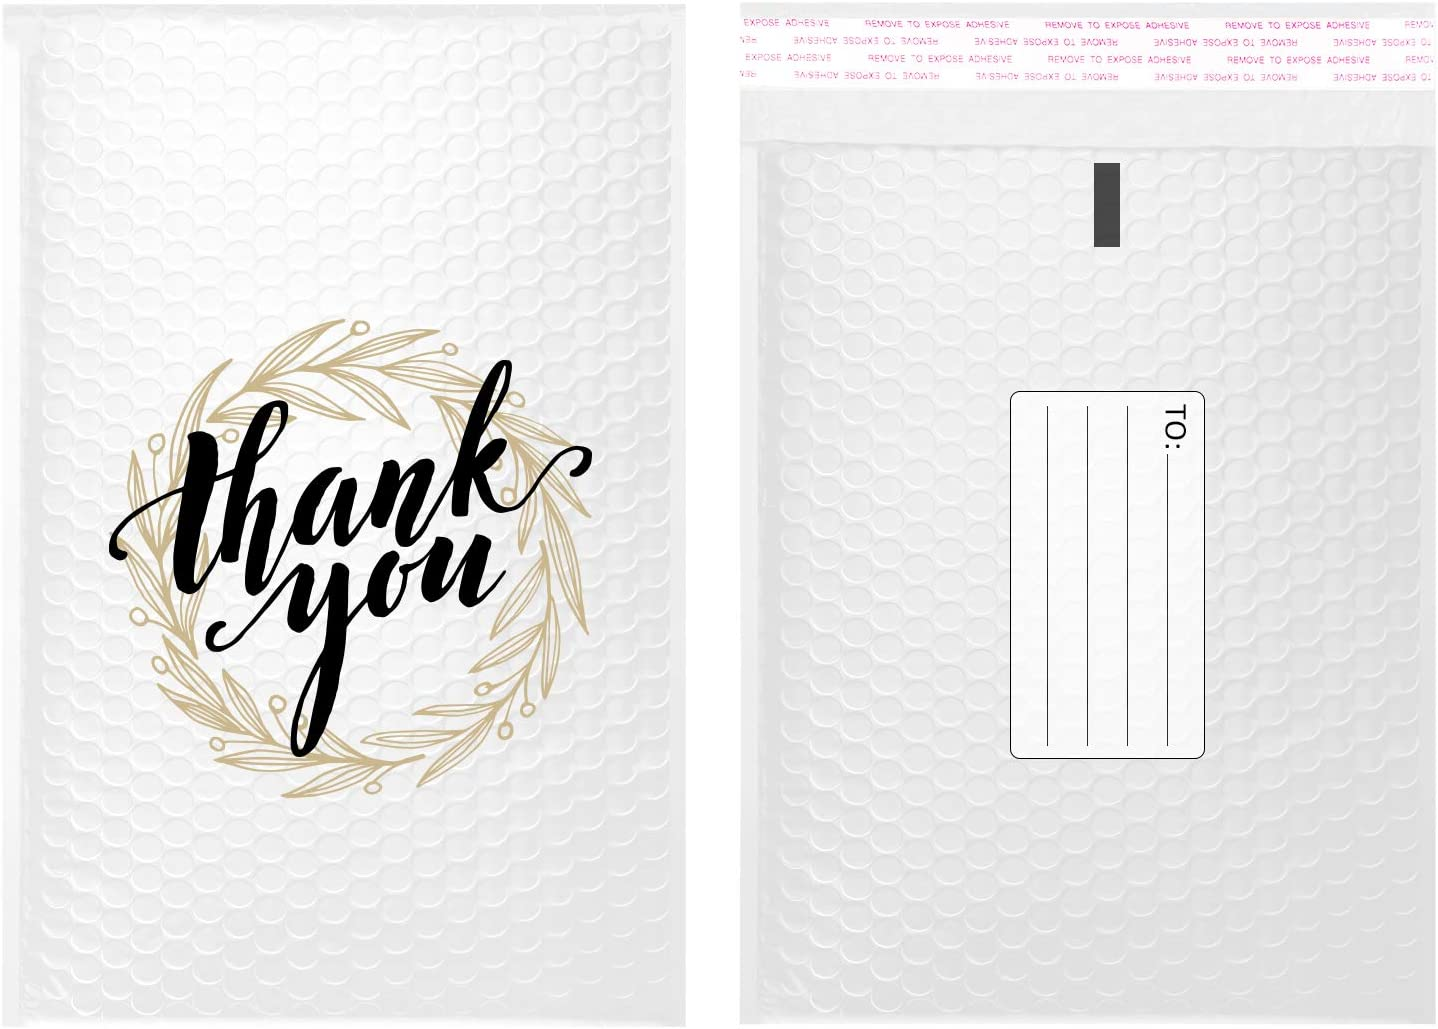 PACKAPRO #0 7x10 Inch Max 74% OFF Thank you- Bubble White S Self Max 88% OFF Poly Mailer